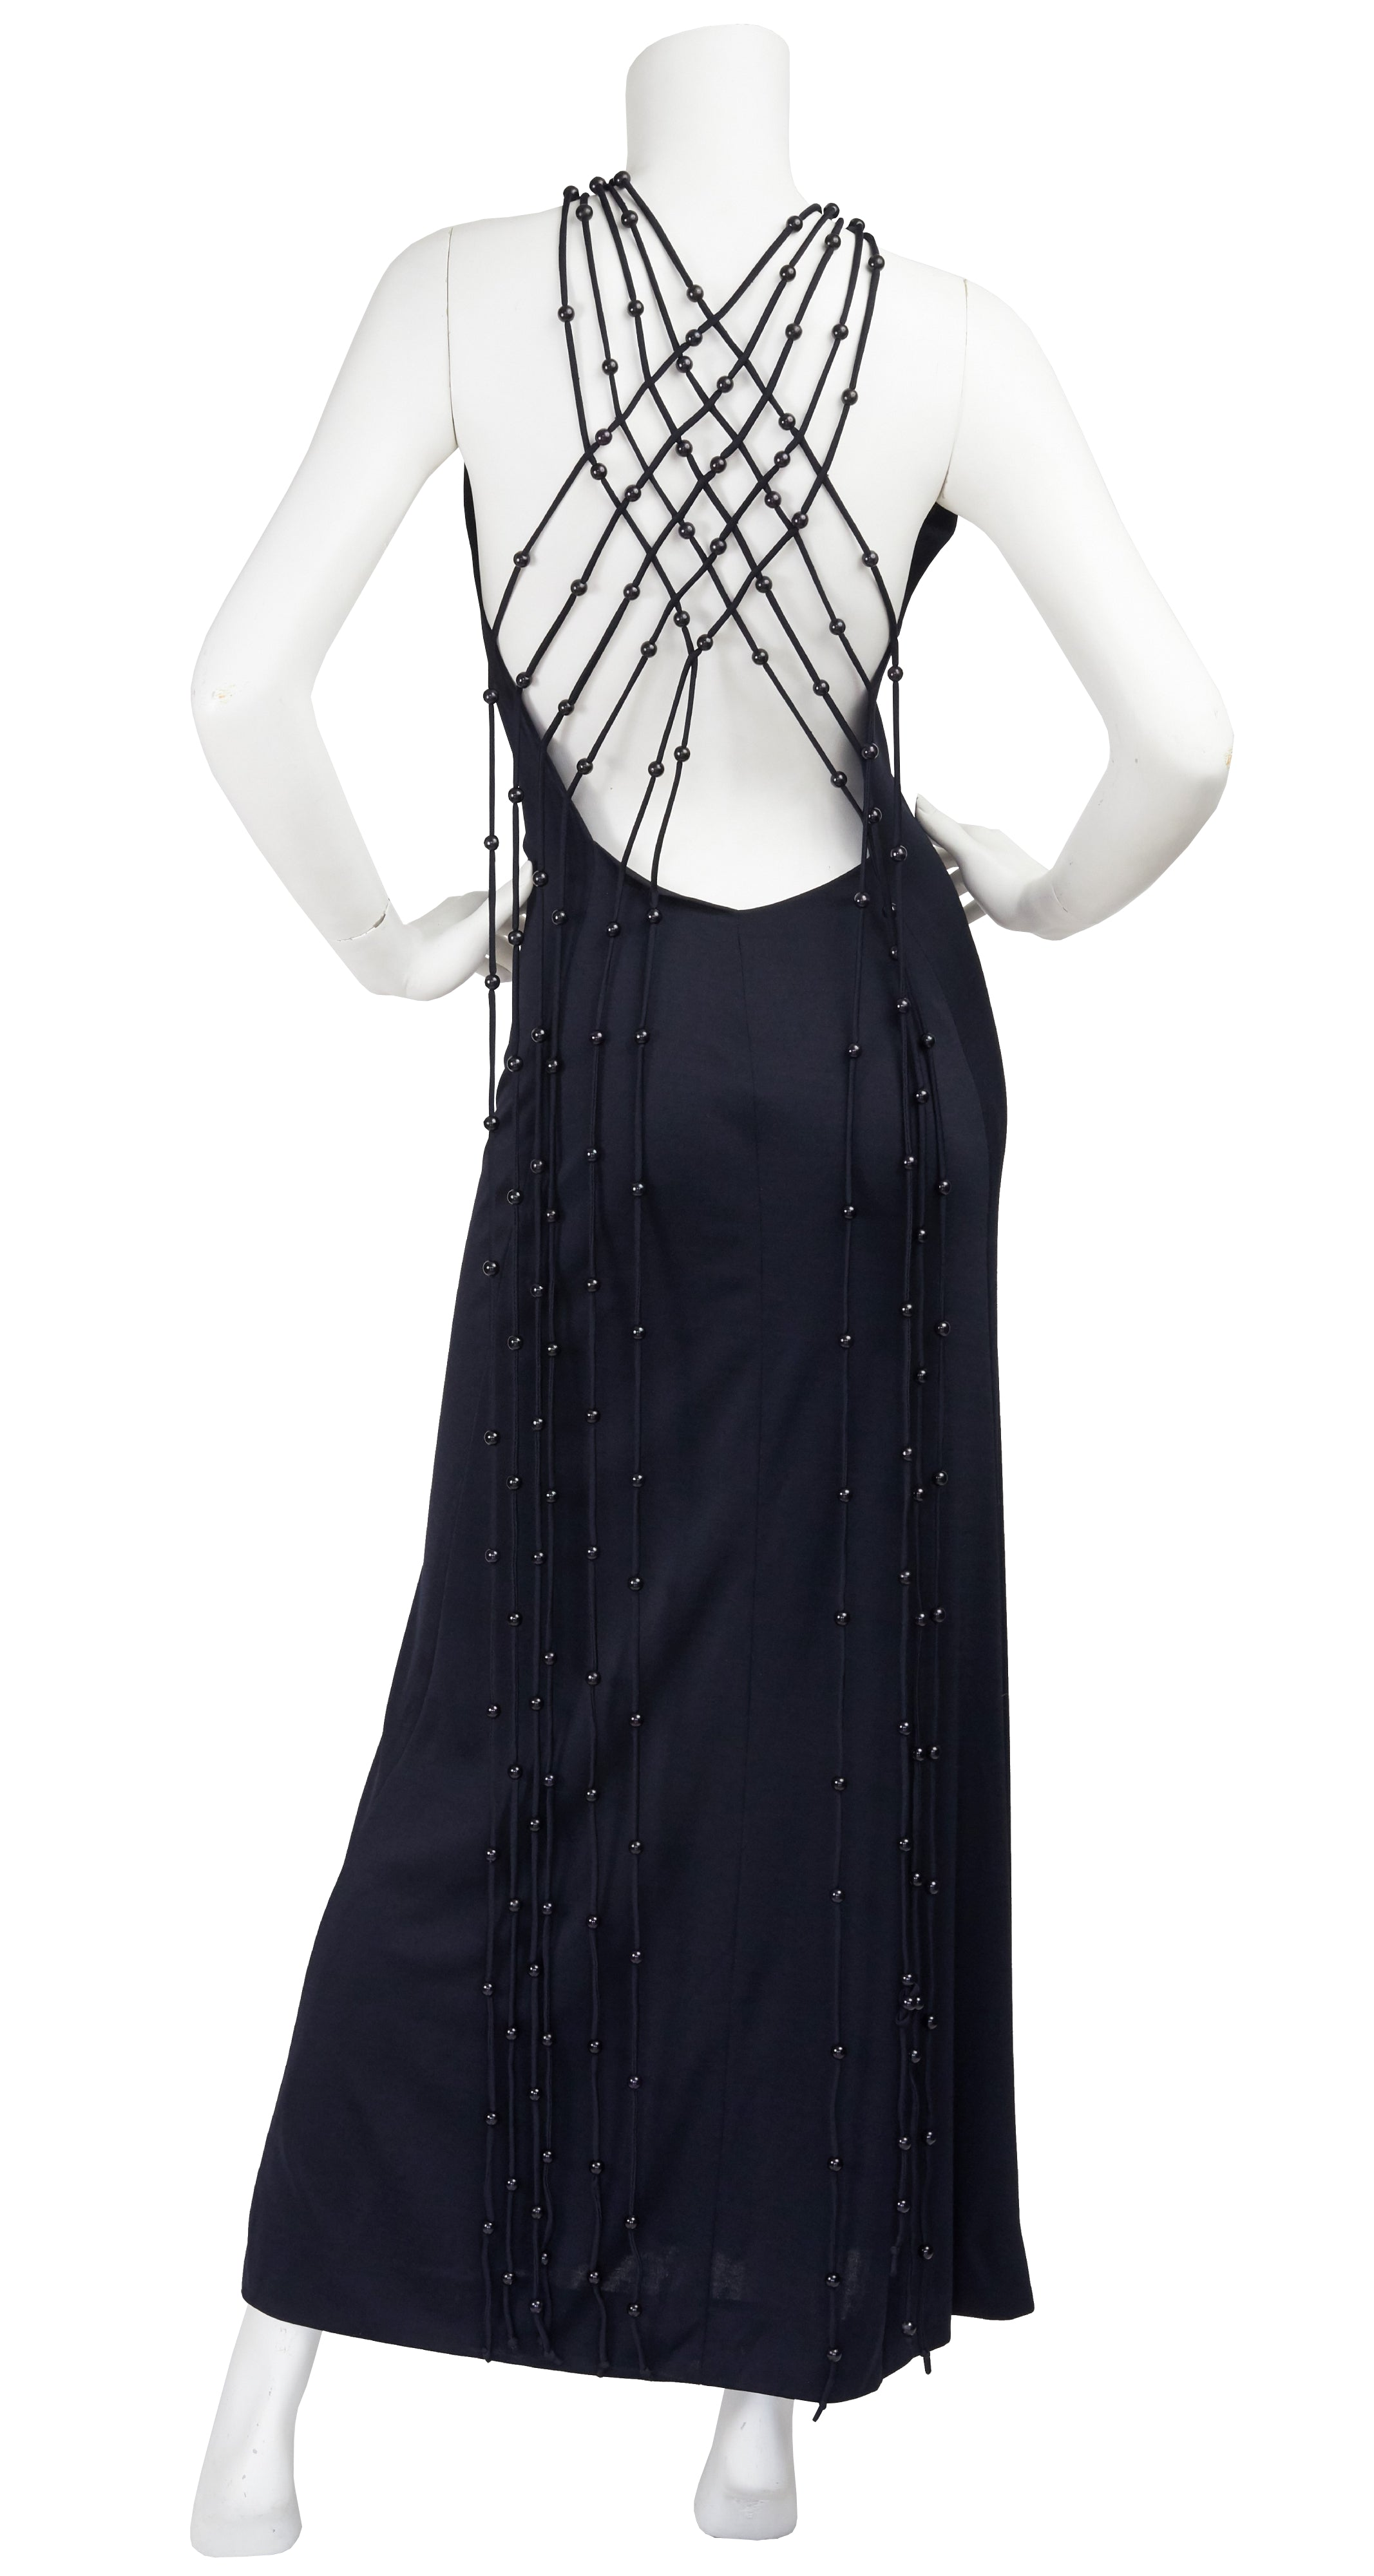 1971 Loris Azzaro Design Black Beaded Macrame Jersey Gown